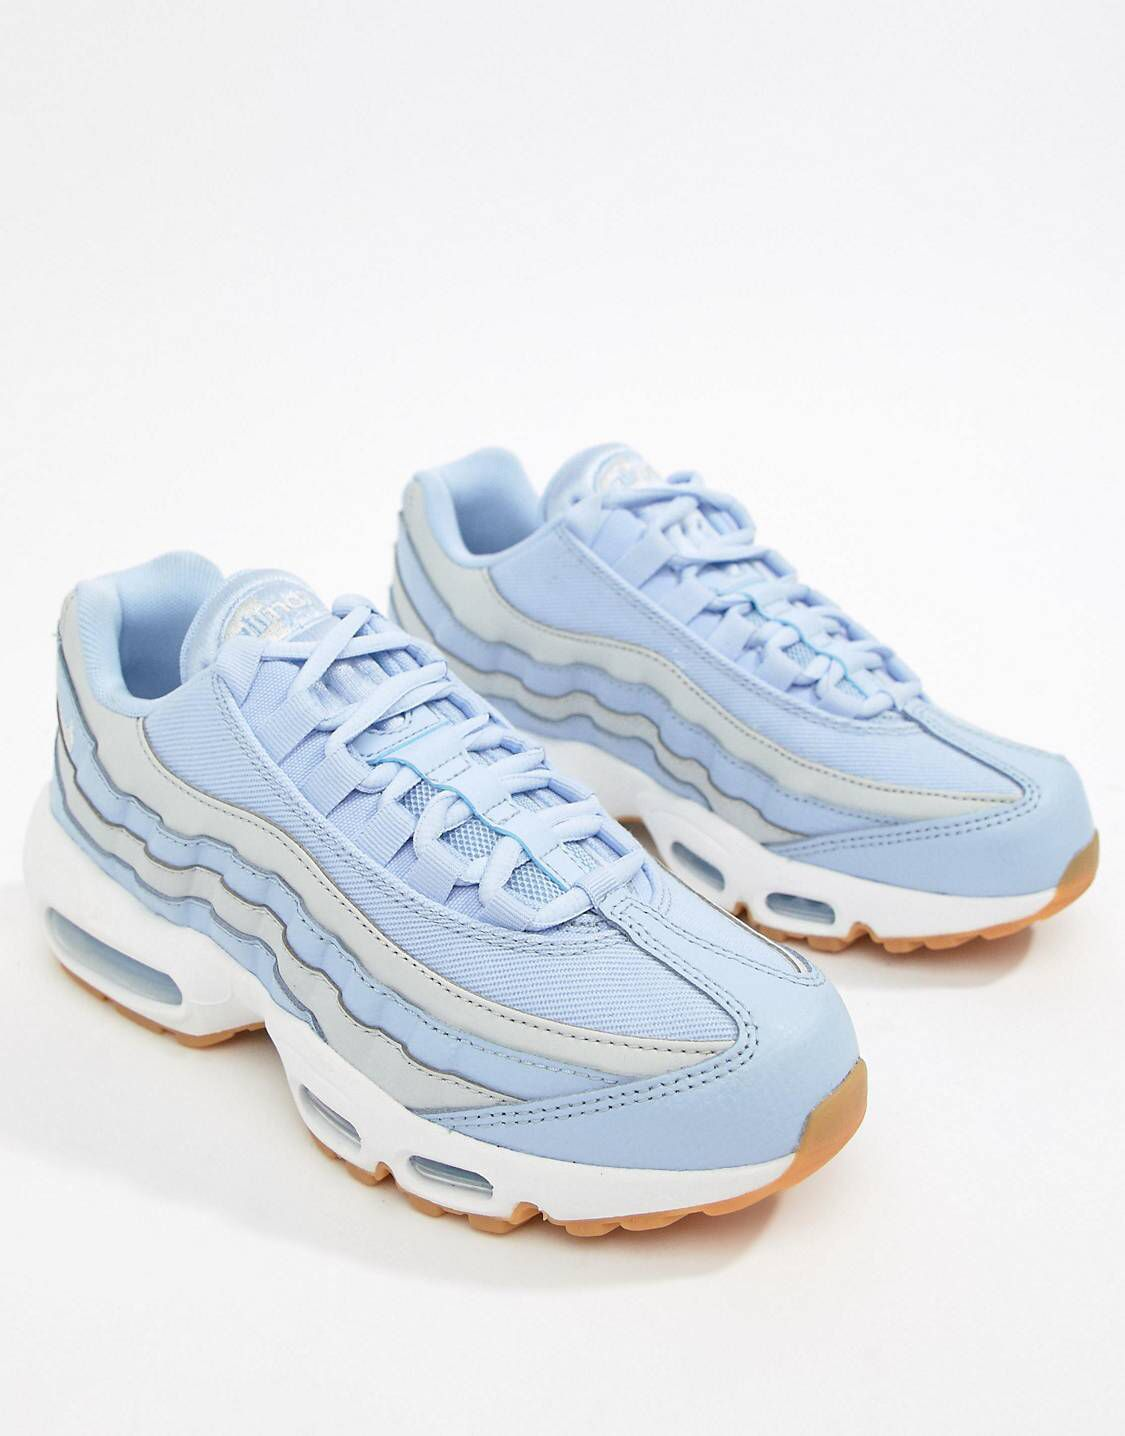 factory outlets utterly stylish 2018 shoes Nike Blue And Grey Ombre Air Max 95 Trainers in 2019 ...